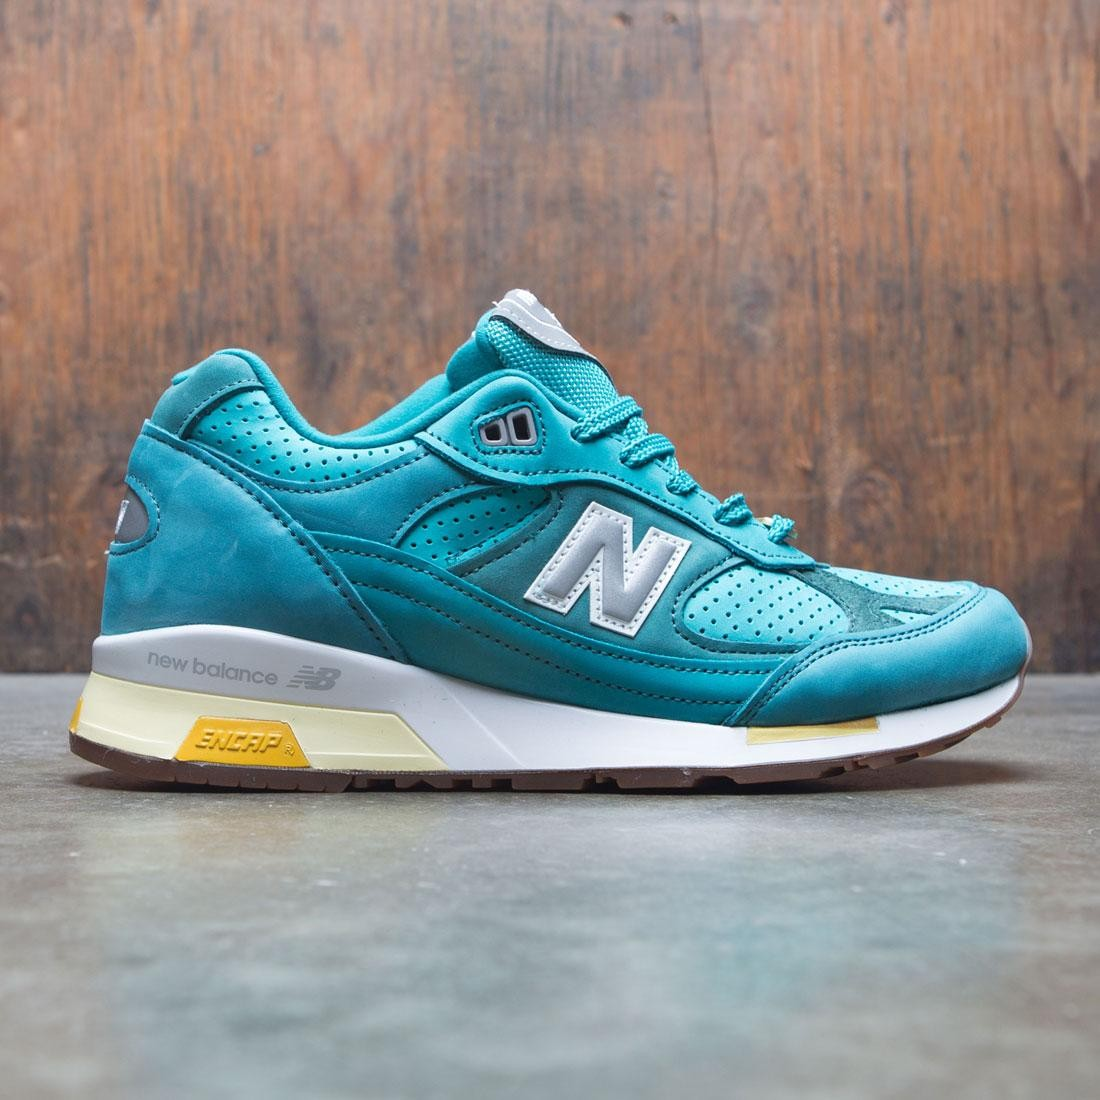 New Balance x Concepts Men 991.5 Lake Havasu M9915CNP - Made In UK (teal / white)